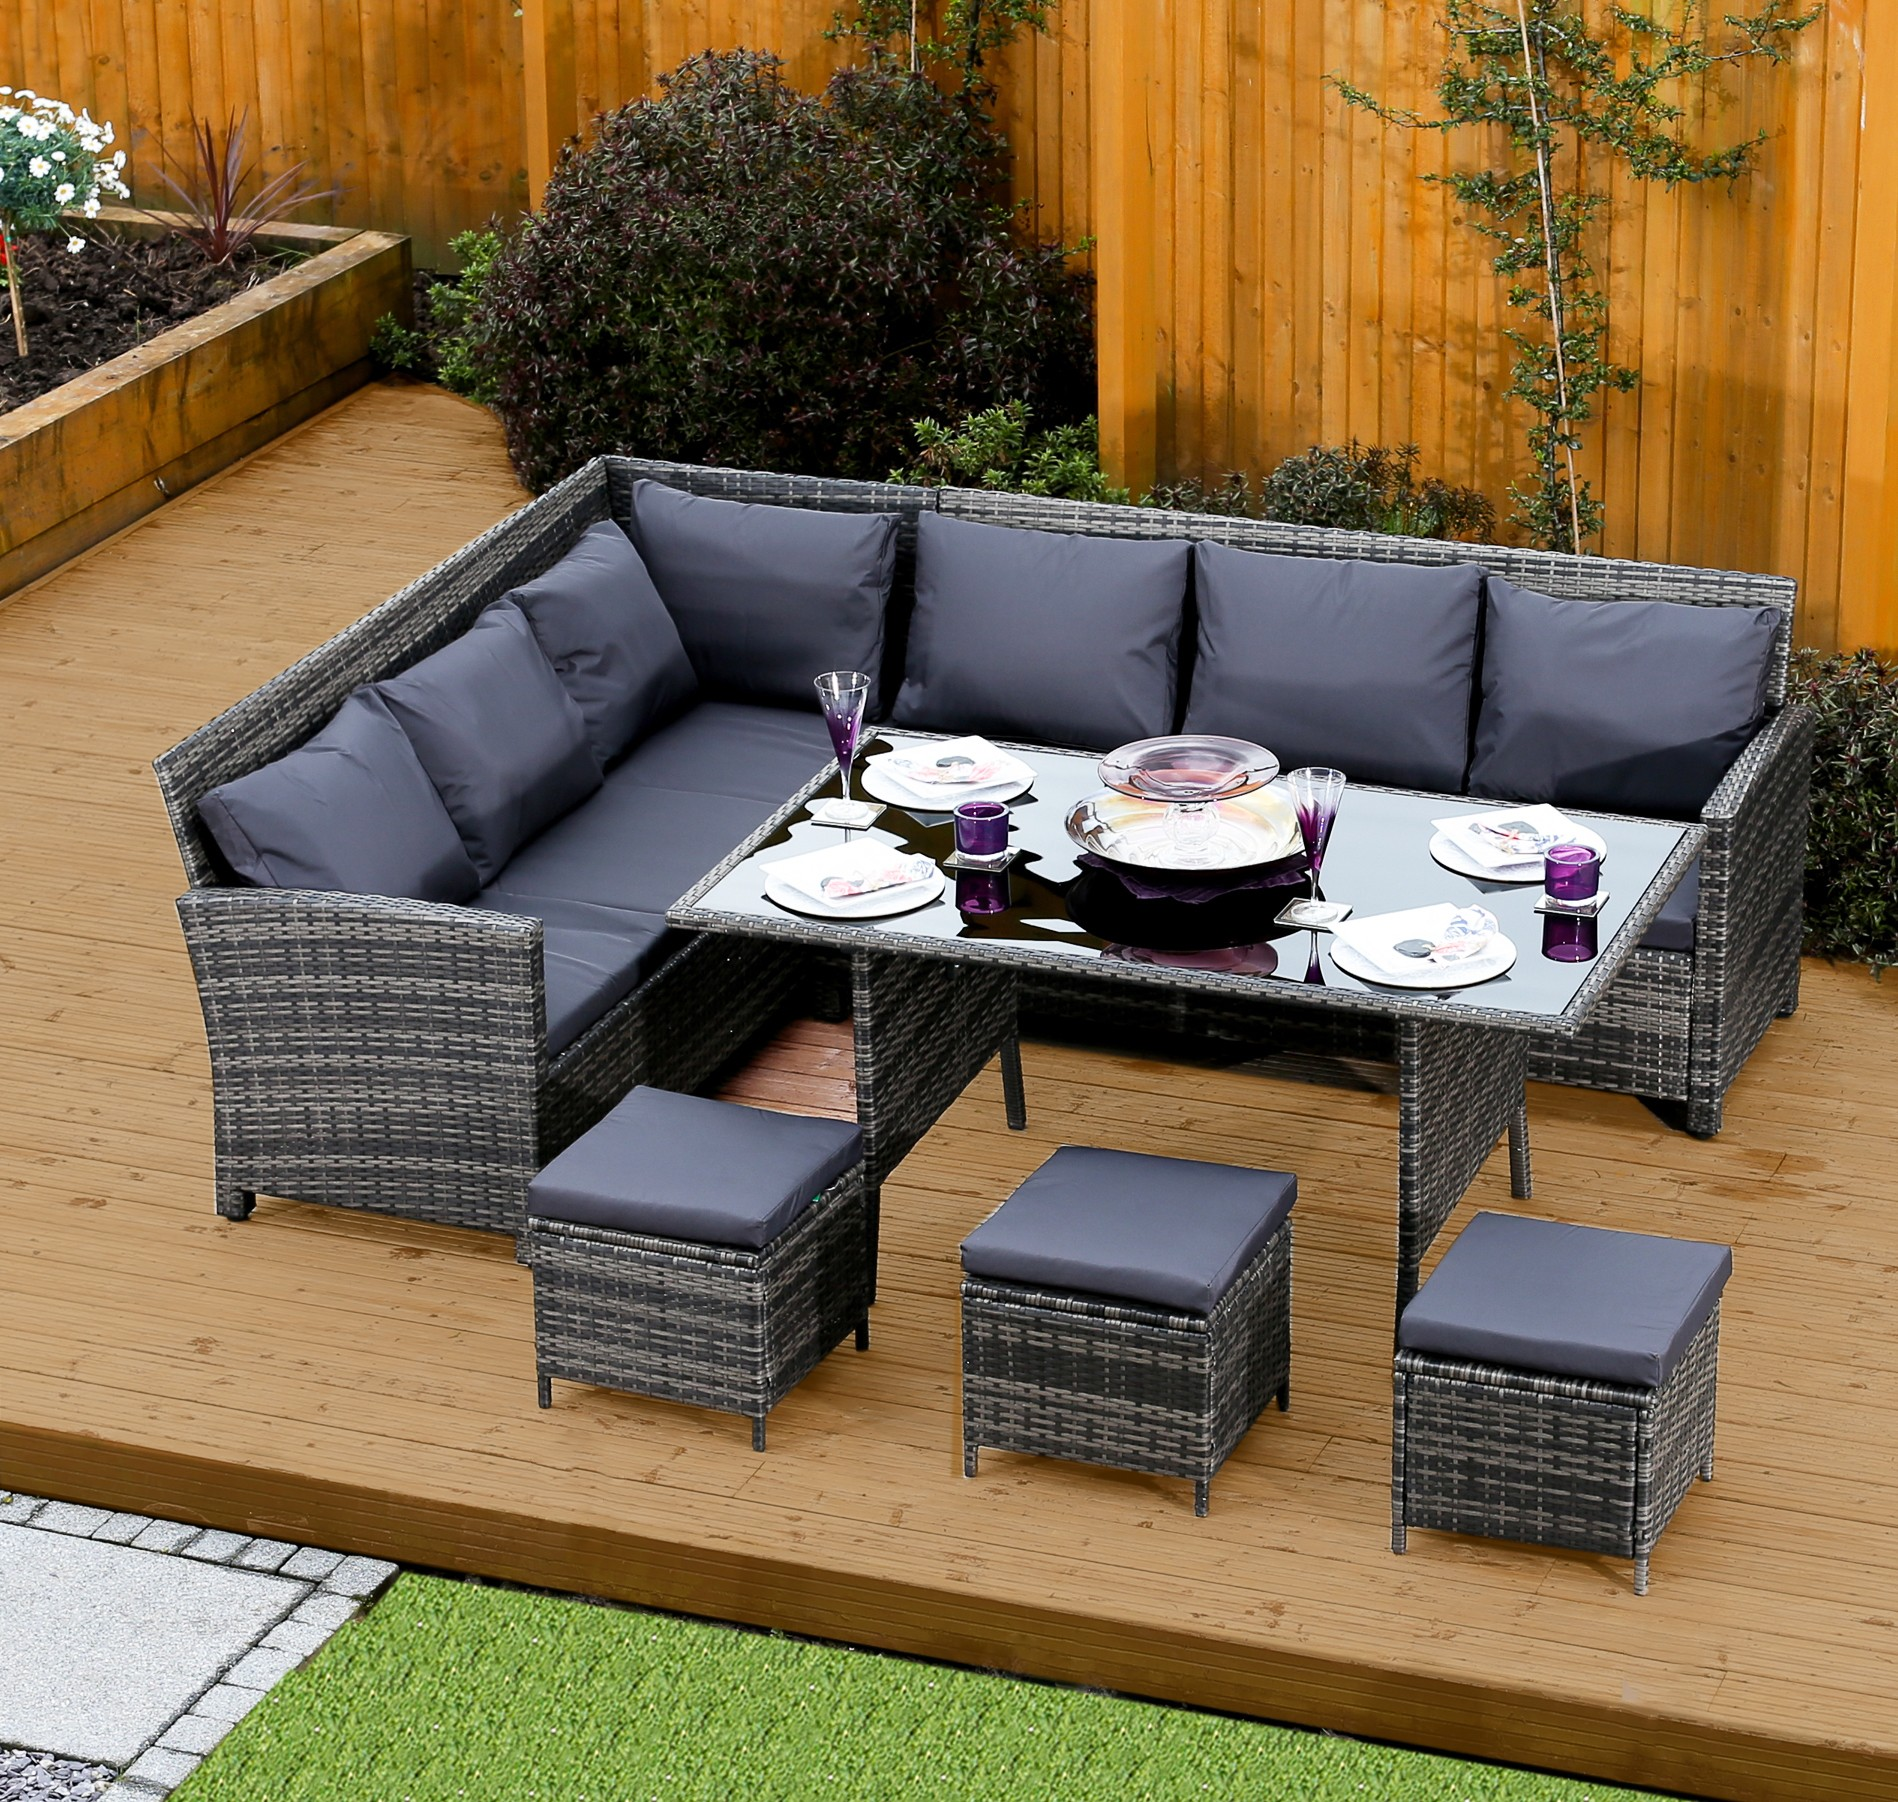 grey rattan dining table. 9 seater rattan corner garden sofa \u0026 dining table set in dark mixed grey with -